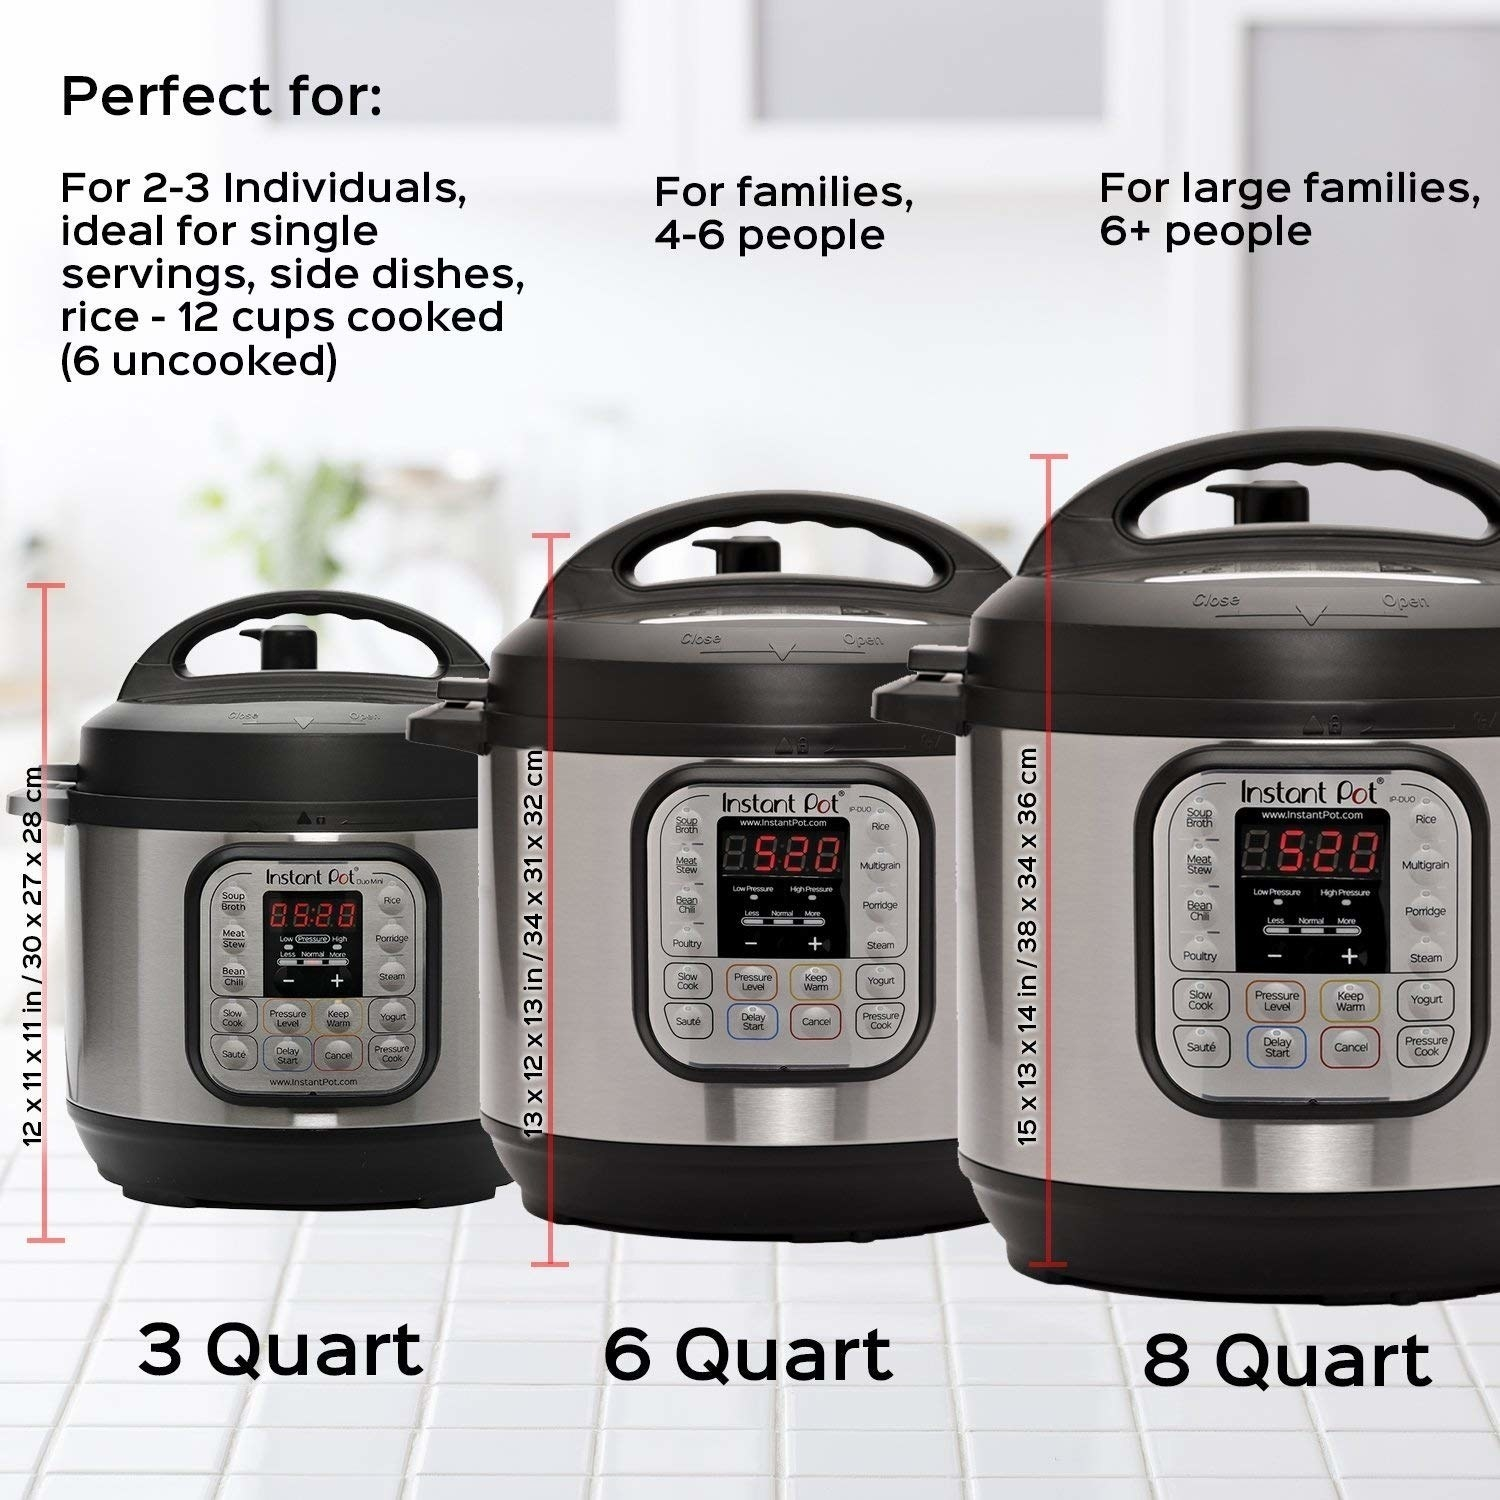 """It's a pressure cooker, slow cooker, rice cooker, steamer, sauté pan, yogurt maker, and food warmer all rolled into one nifty appliance. Check out a BuzzFeeder's review of the Instant Pot for all the deets!Promising review: """"I have owned my Duo for over a year now, and I have used it at least five times each week. For cooking pasta, it's a 'set it and forget it' appliance. Dump in pasta, sauce, meatballs, and water. Set the time and go off to fold laundry, pack lunches, or whatever else needs to get done before bed. No more standing over the stove or stirring. Roasts come out great, with potatoes soaking in all the amazing juices at the same time. Cheesecakes are easier than ever. The best part is that there's no cleanup and no hot kitchen, like cooking with an oven. The stainless steel liner just goes straight into the dishwasher, saving busy families even more precious time. I have since added another Instant Pot to my collection and purchased five as gifts for family and friends."""" —Elissa SpicerGet it from Amazon for $63.99+ (available in three sizes).For more like this, check out our """"The Best Gifts Under $100 To Give In 2018"""" gift guide."""